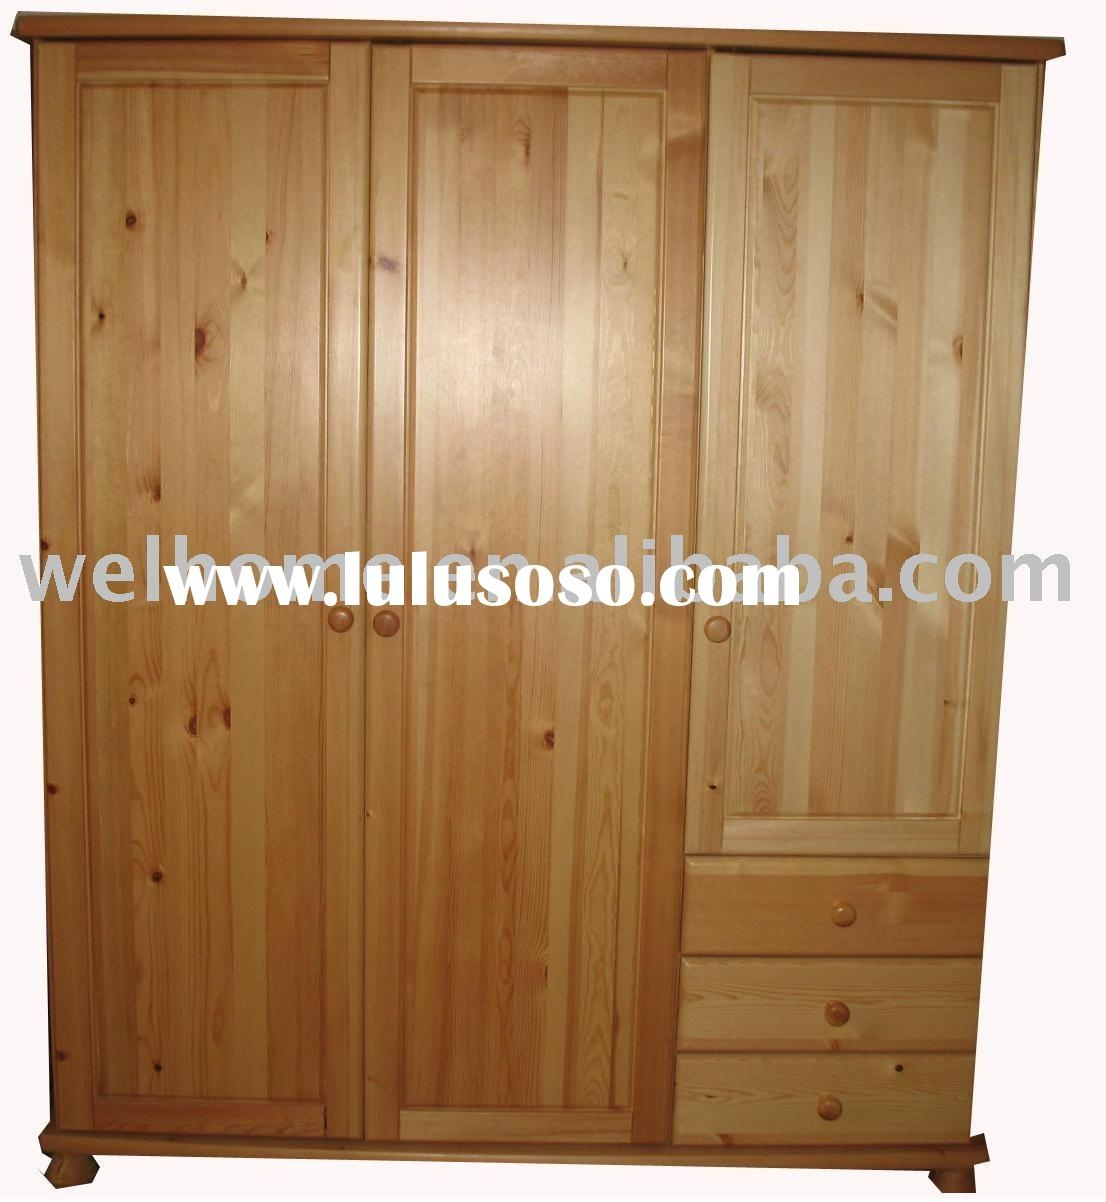 Furniture Fancy Wardrobe Armoire For Wardrobe Organizer Idea Throughout Solid Wood Wardrobe Closets (Image 12 of 25)